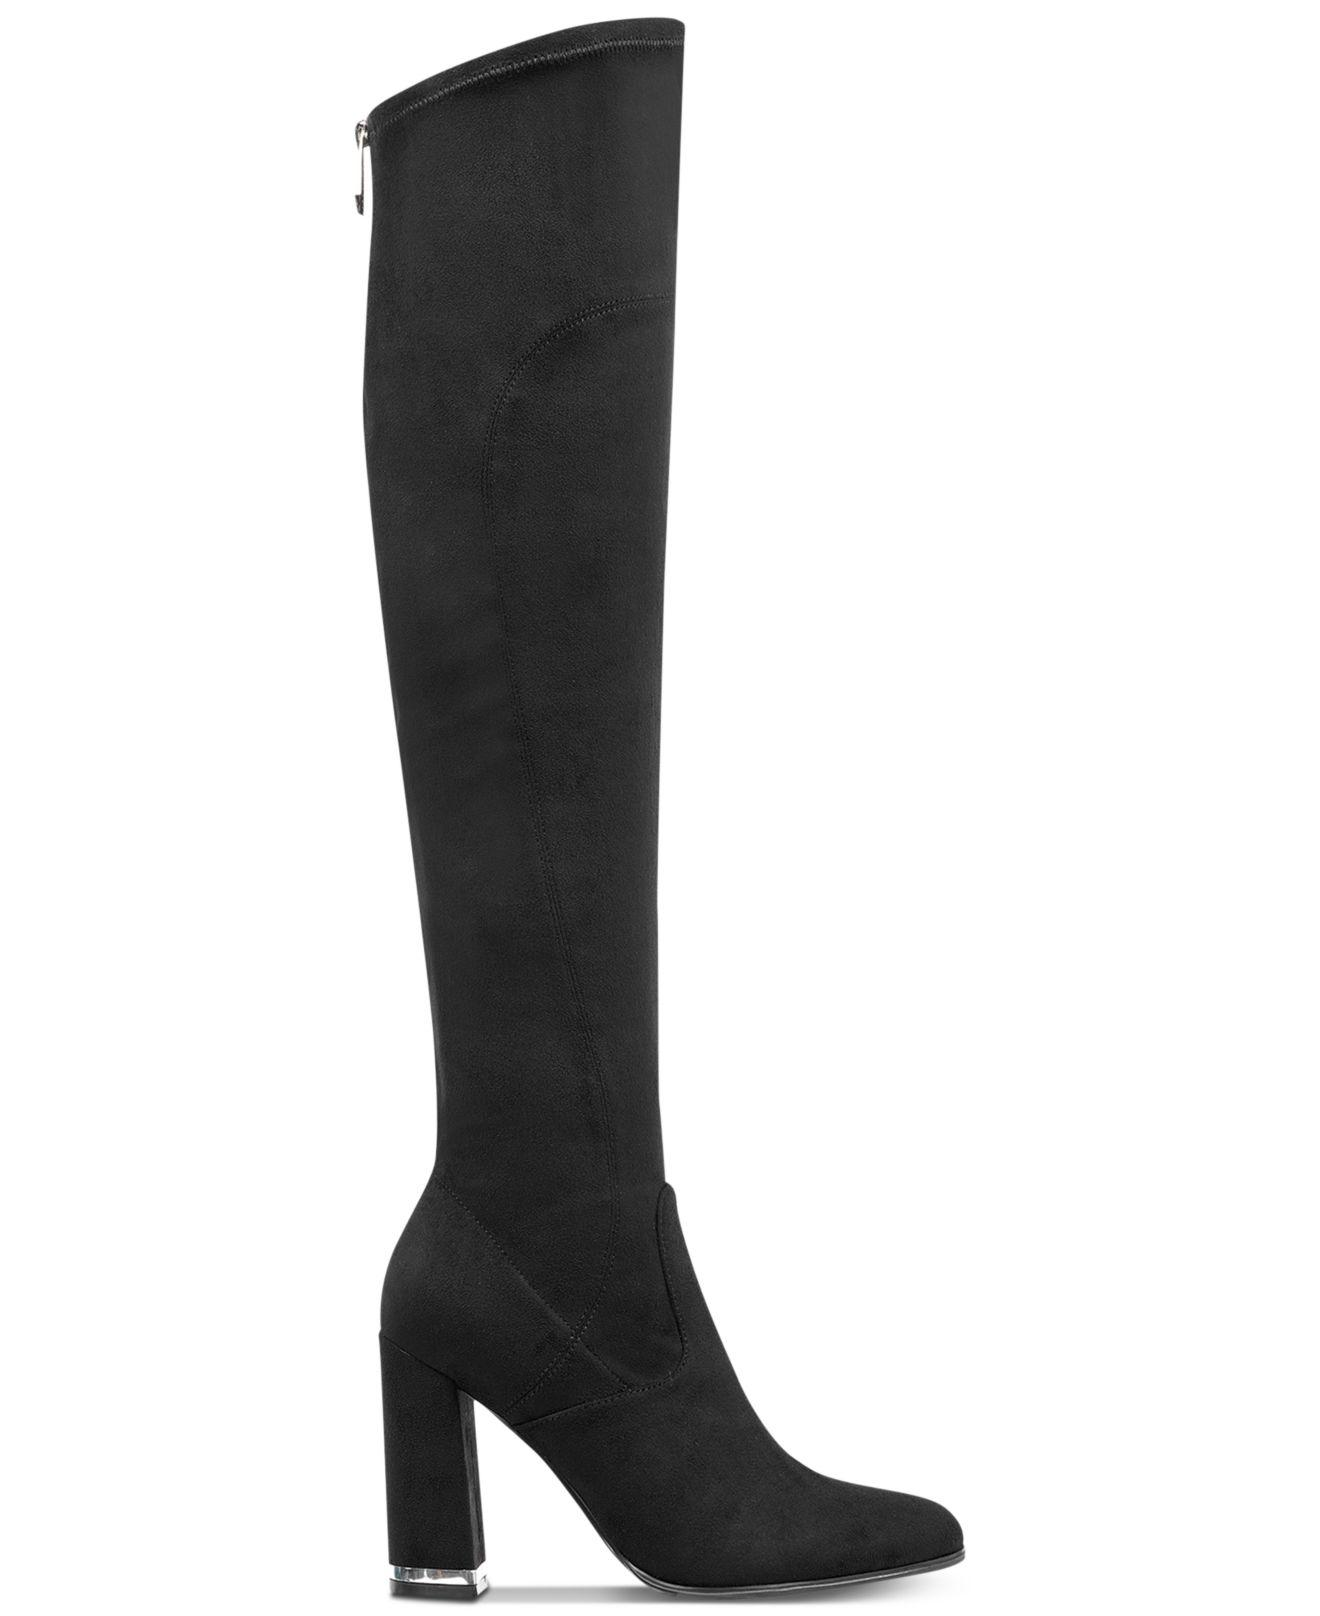 fef3be69b8b Lyst - Marc Fisher Natier Over-the-knee Boots in Black